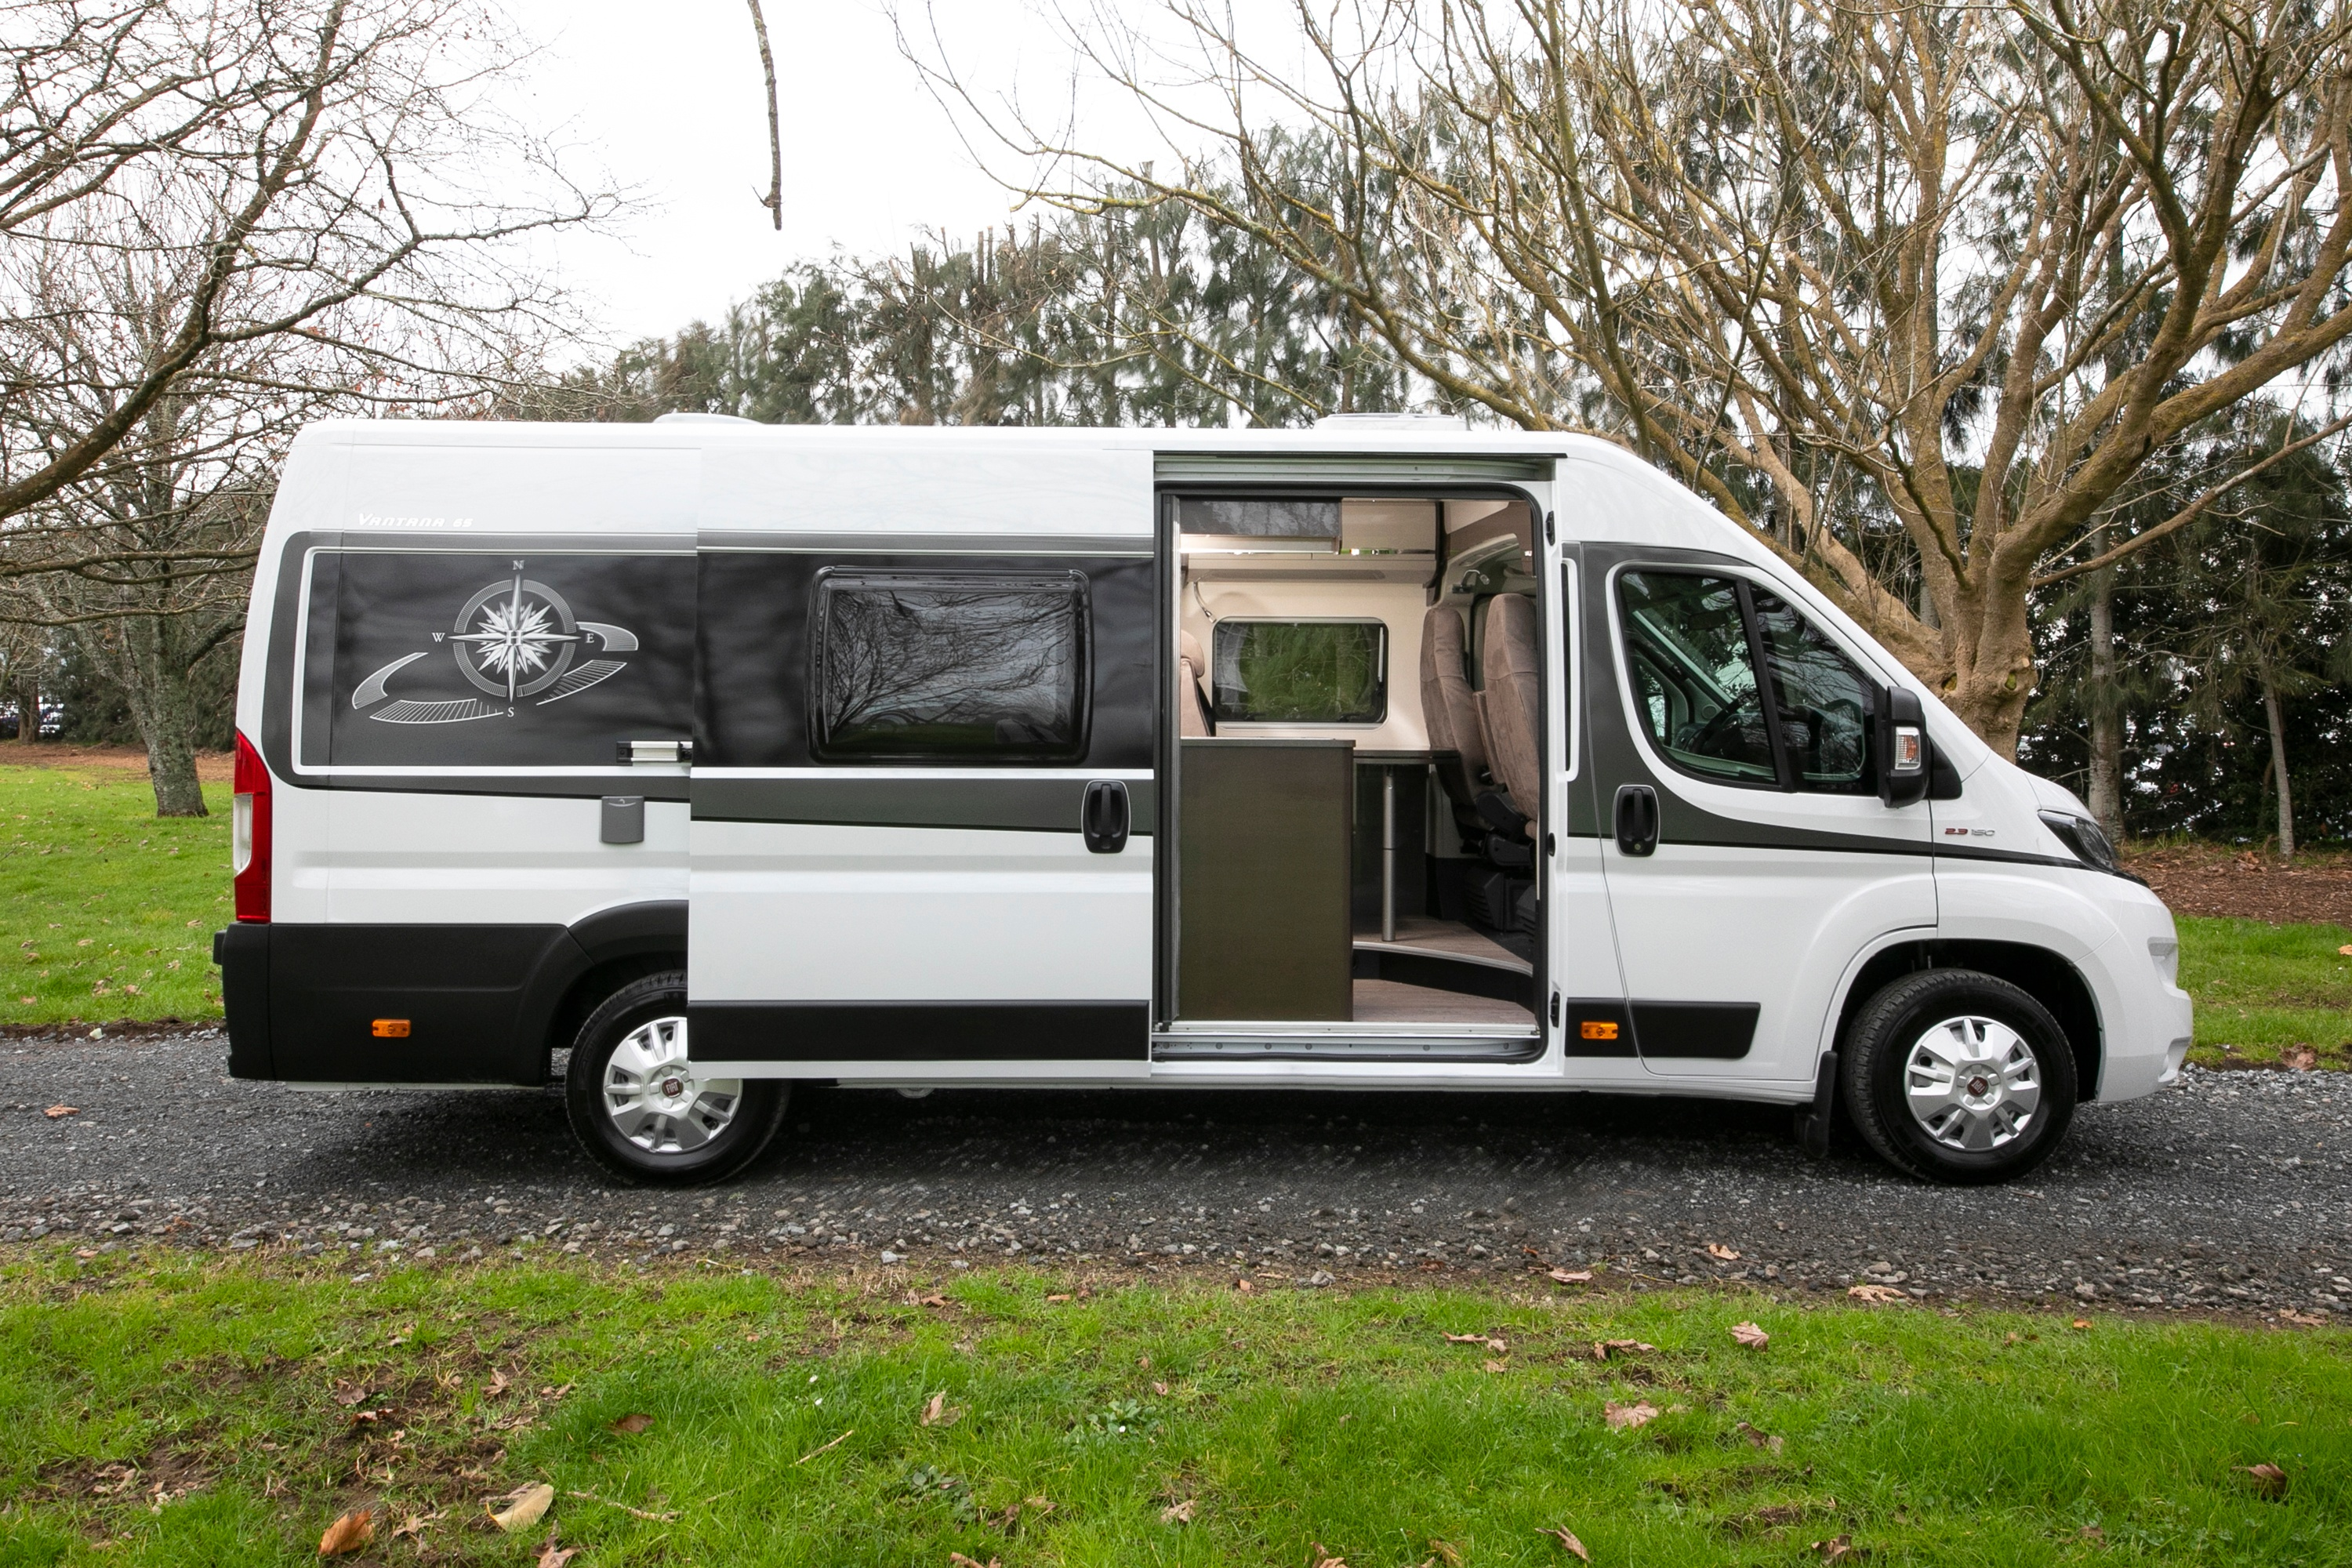 New Zealand Campervan rental - Vista 2 from Wilderness Motorhomes - Sliding door